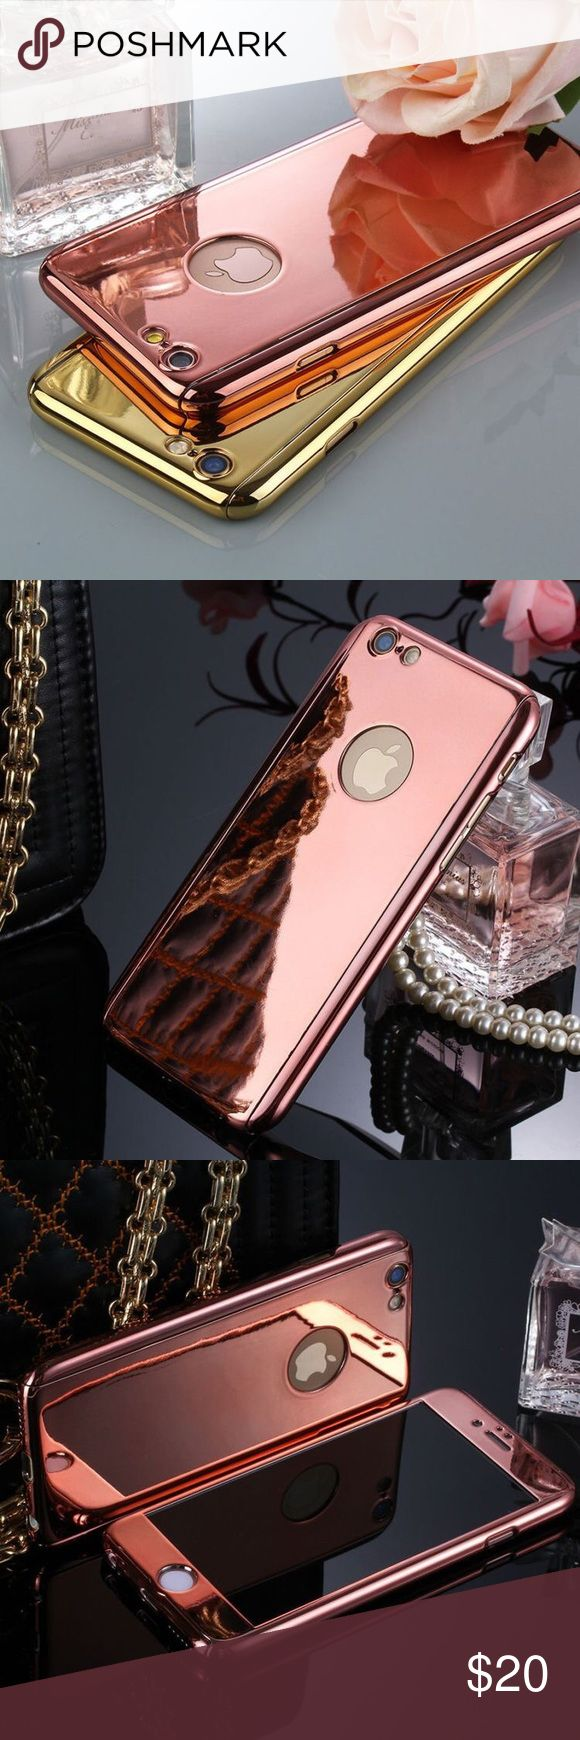 🆕the mirror plated 360° phone case • style name: the mirror plated 360° phone case • color: rose gold • material: alloy & plated metal/9h tempered glass • high shine mirror case w/ front & back pieces • also includes tempered glass protection for screen & camera • fits iphone 6/6s - comment below to request for a different phone • condition: brand new boutique item ____________________________________________________ ✅ make an offer!     ✅ i bundle! ✅ posh compliant closet ⛔️ no trades 🛍…